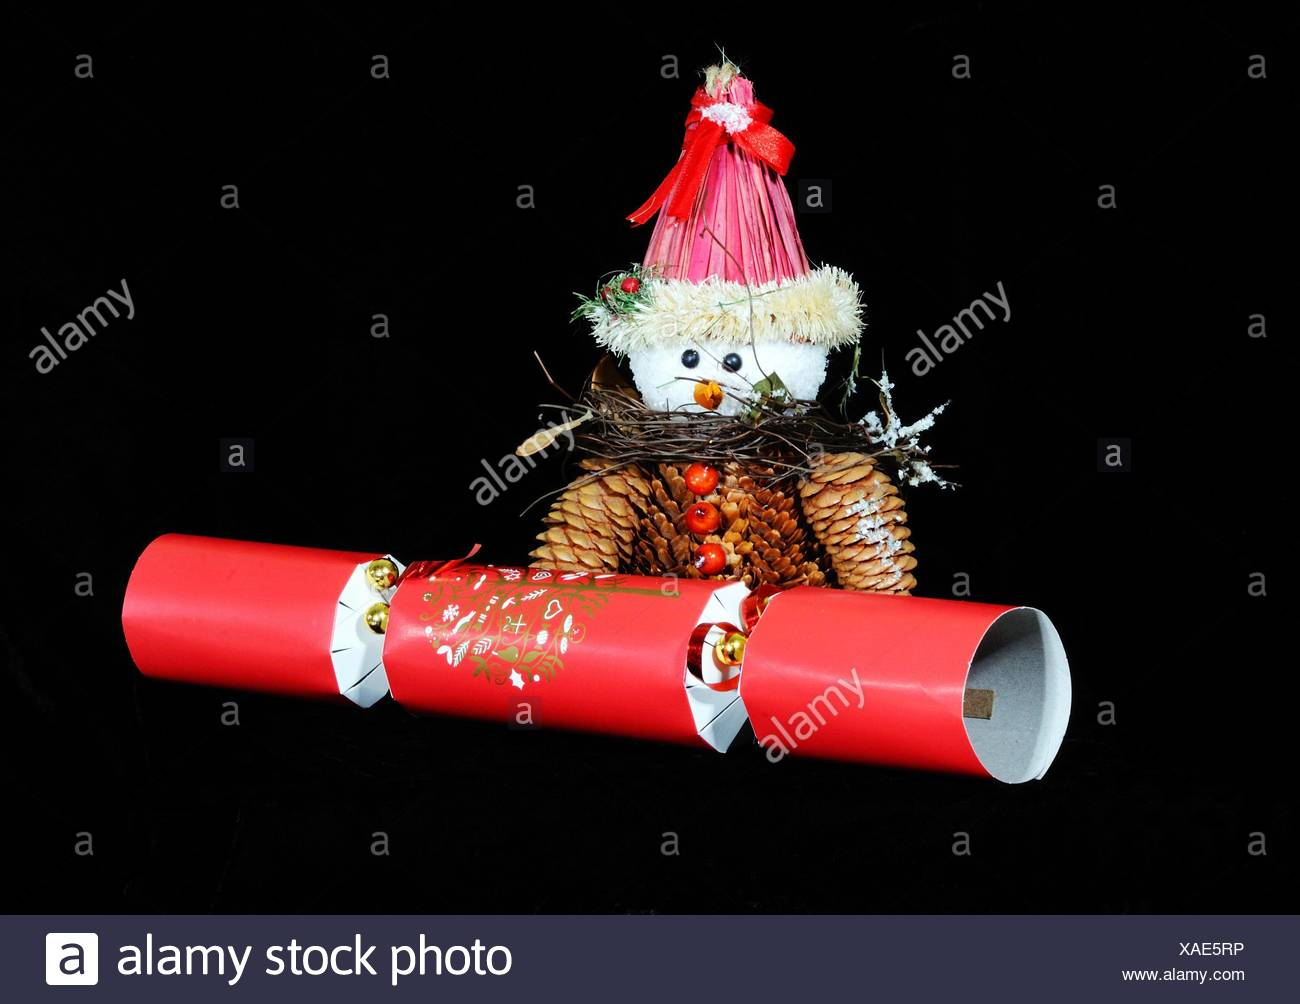 Christmas cracker hats stock photos christmas cracker hats stock snowman made from pinecones with a red christmas cracker set against a black background england solutioingenieria Images